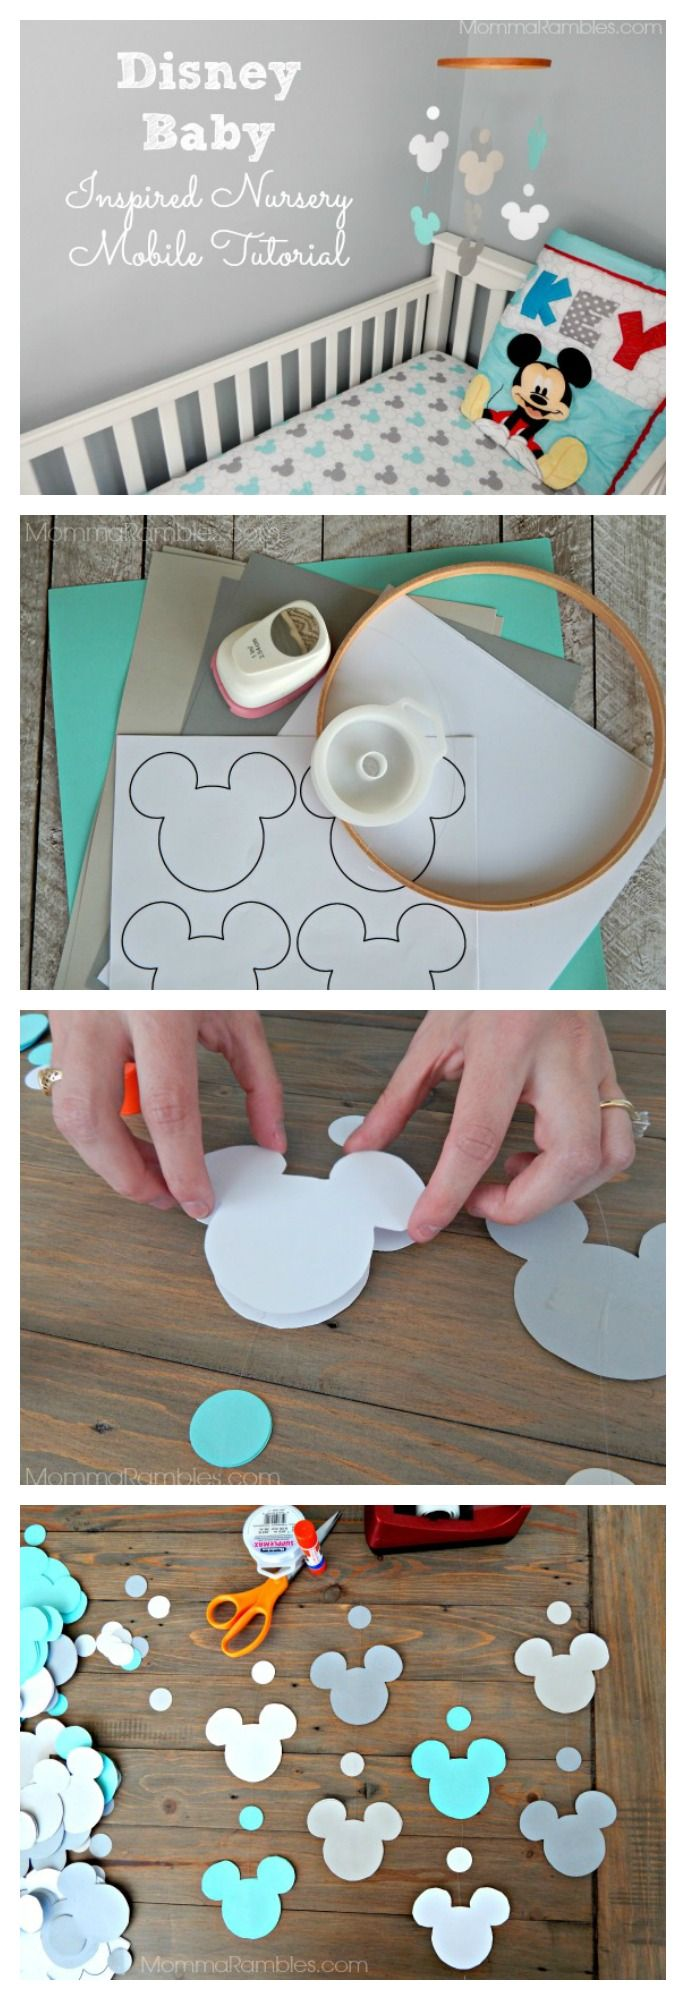 "Disney Baby Inspired Nursery Mobile Tutorial. ""Let's Go Mickey"" crib bedding available at @Walmart. #MagicBabyMoments #CollectiveBias  #Ad"